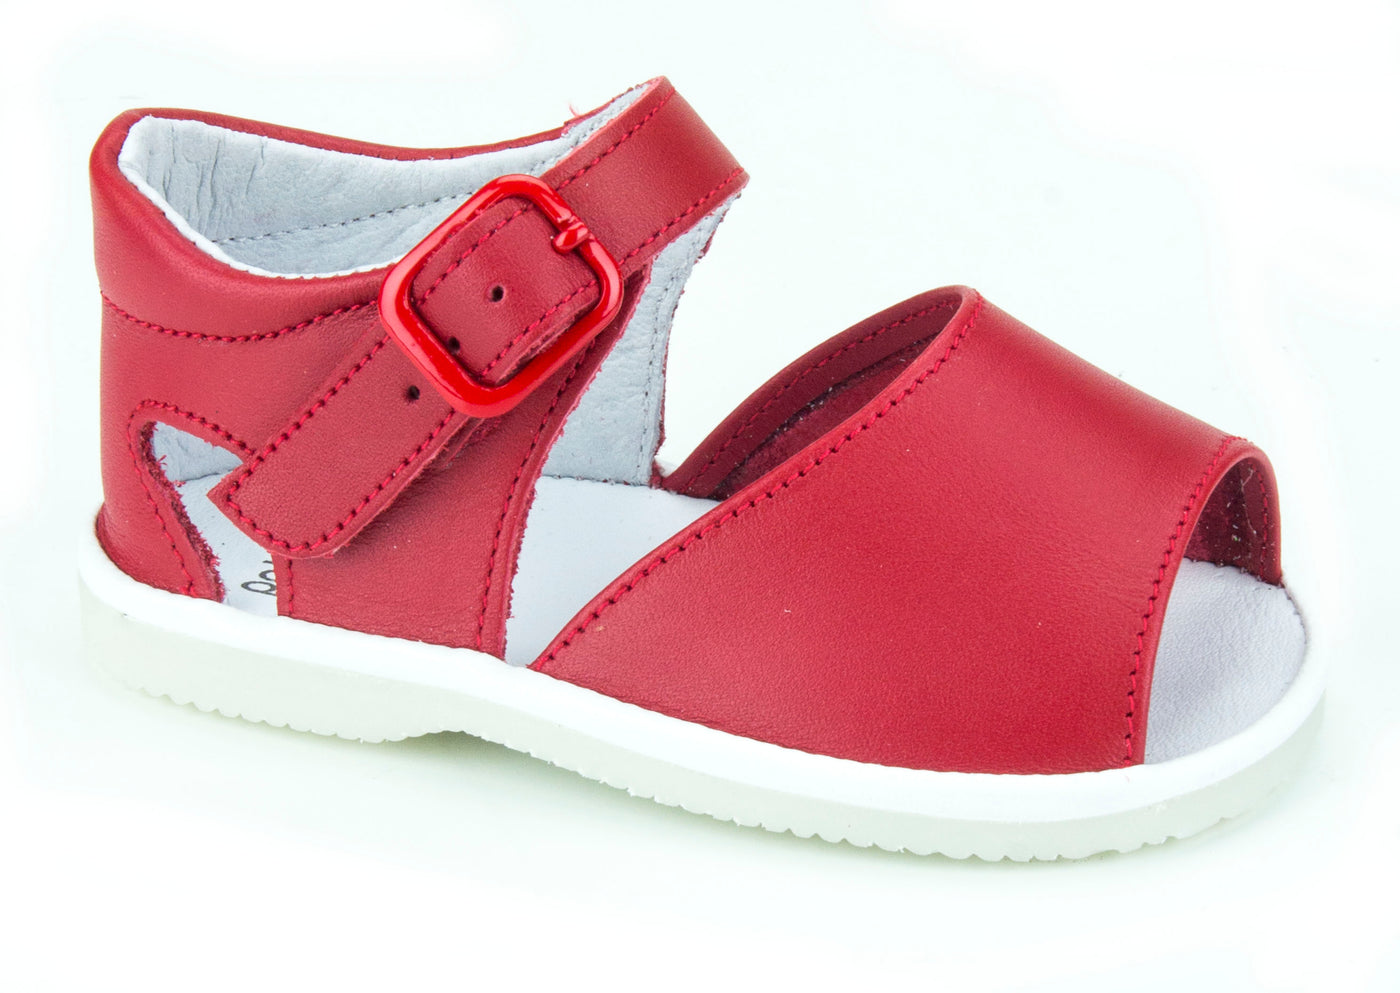 Casual Sandals Red unisex  for Boys and Girls Patucos Leather Shoes for Baby